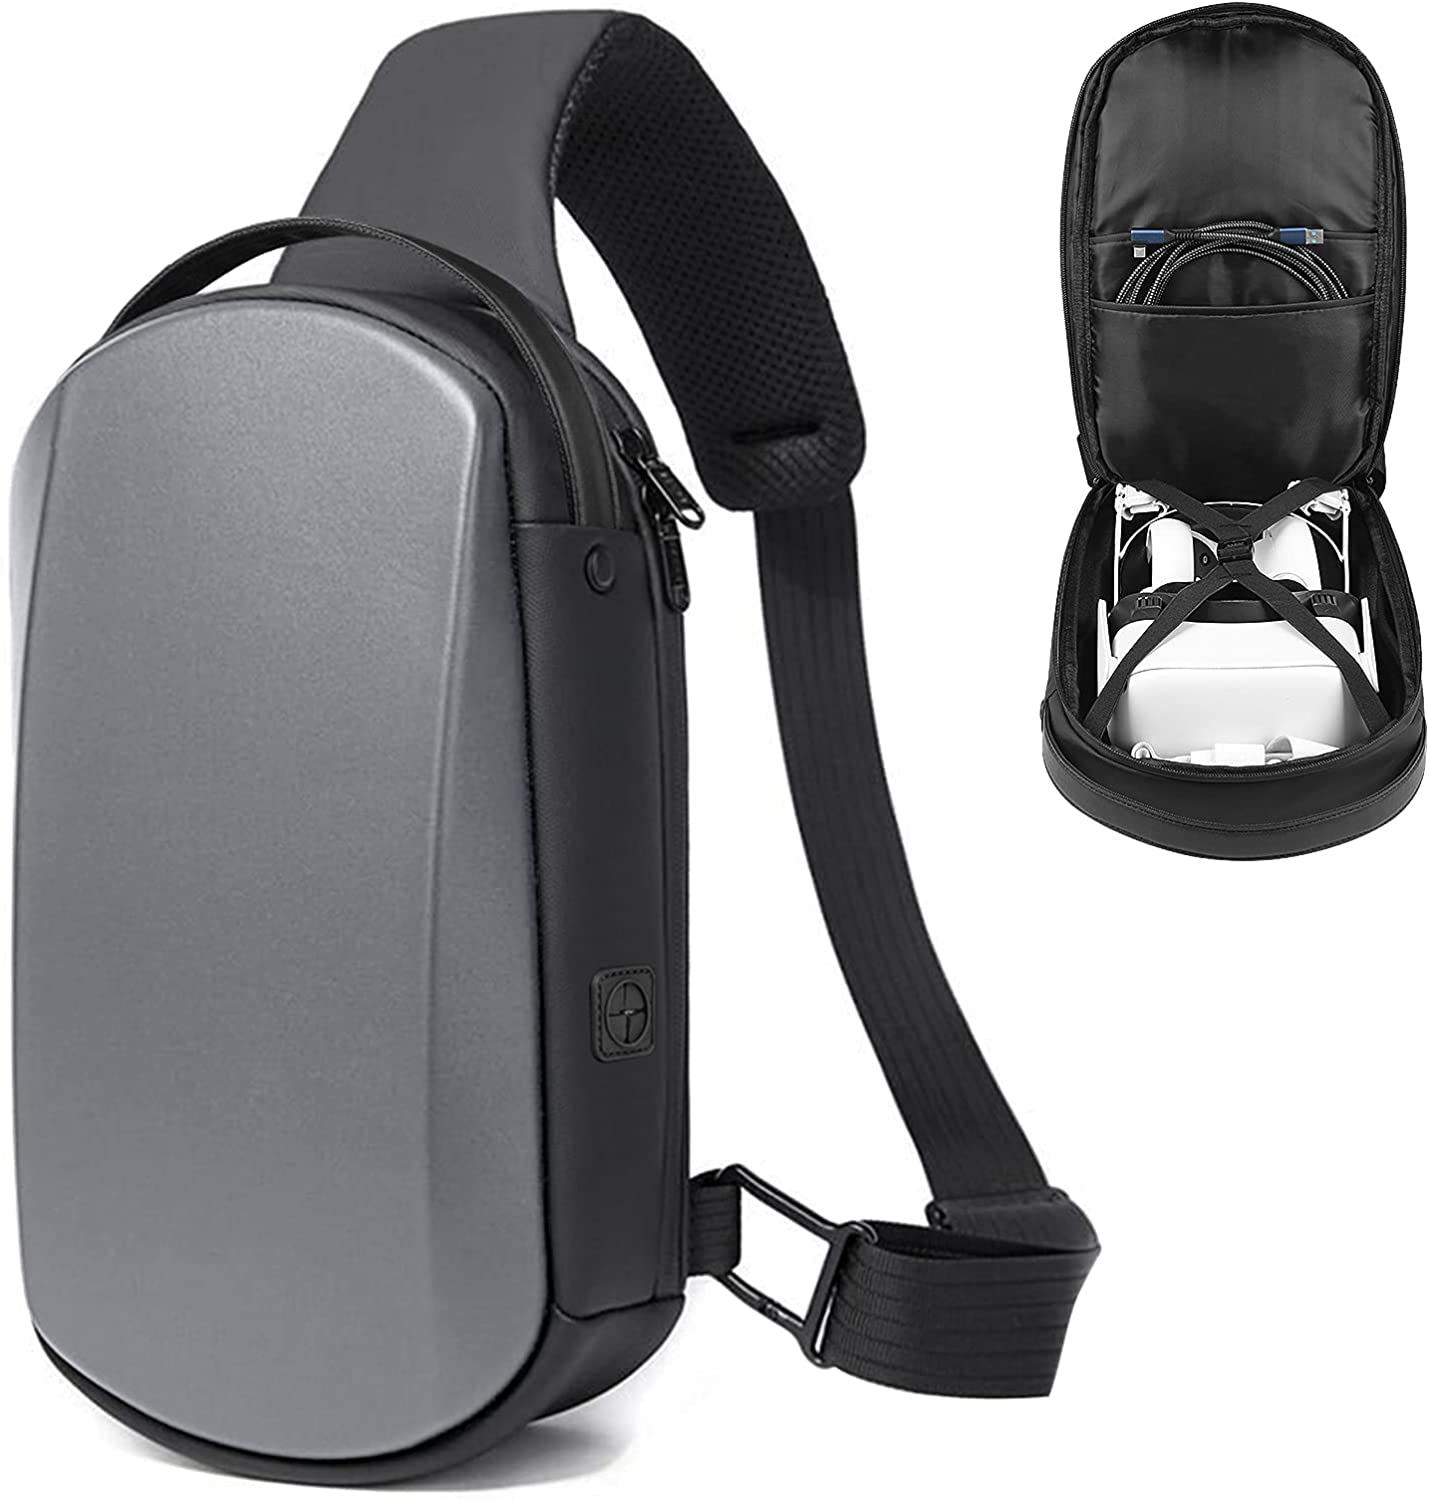 Oculus Quest 2 Carrying Case - Waterproof, Portable Protection - Fit for Elite Strap, Halo Strap & All VR Acessories - Travel Crossbody Backpack Shoulder Bag for Men Women (Grey)